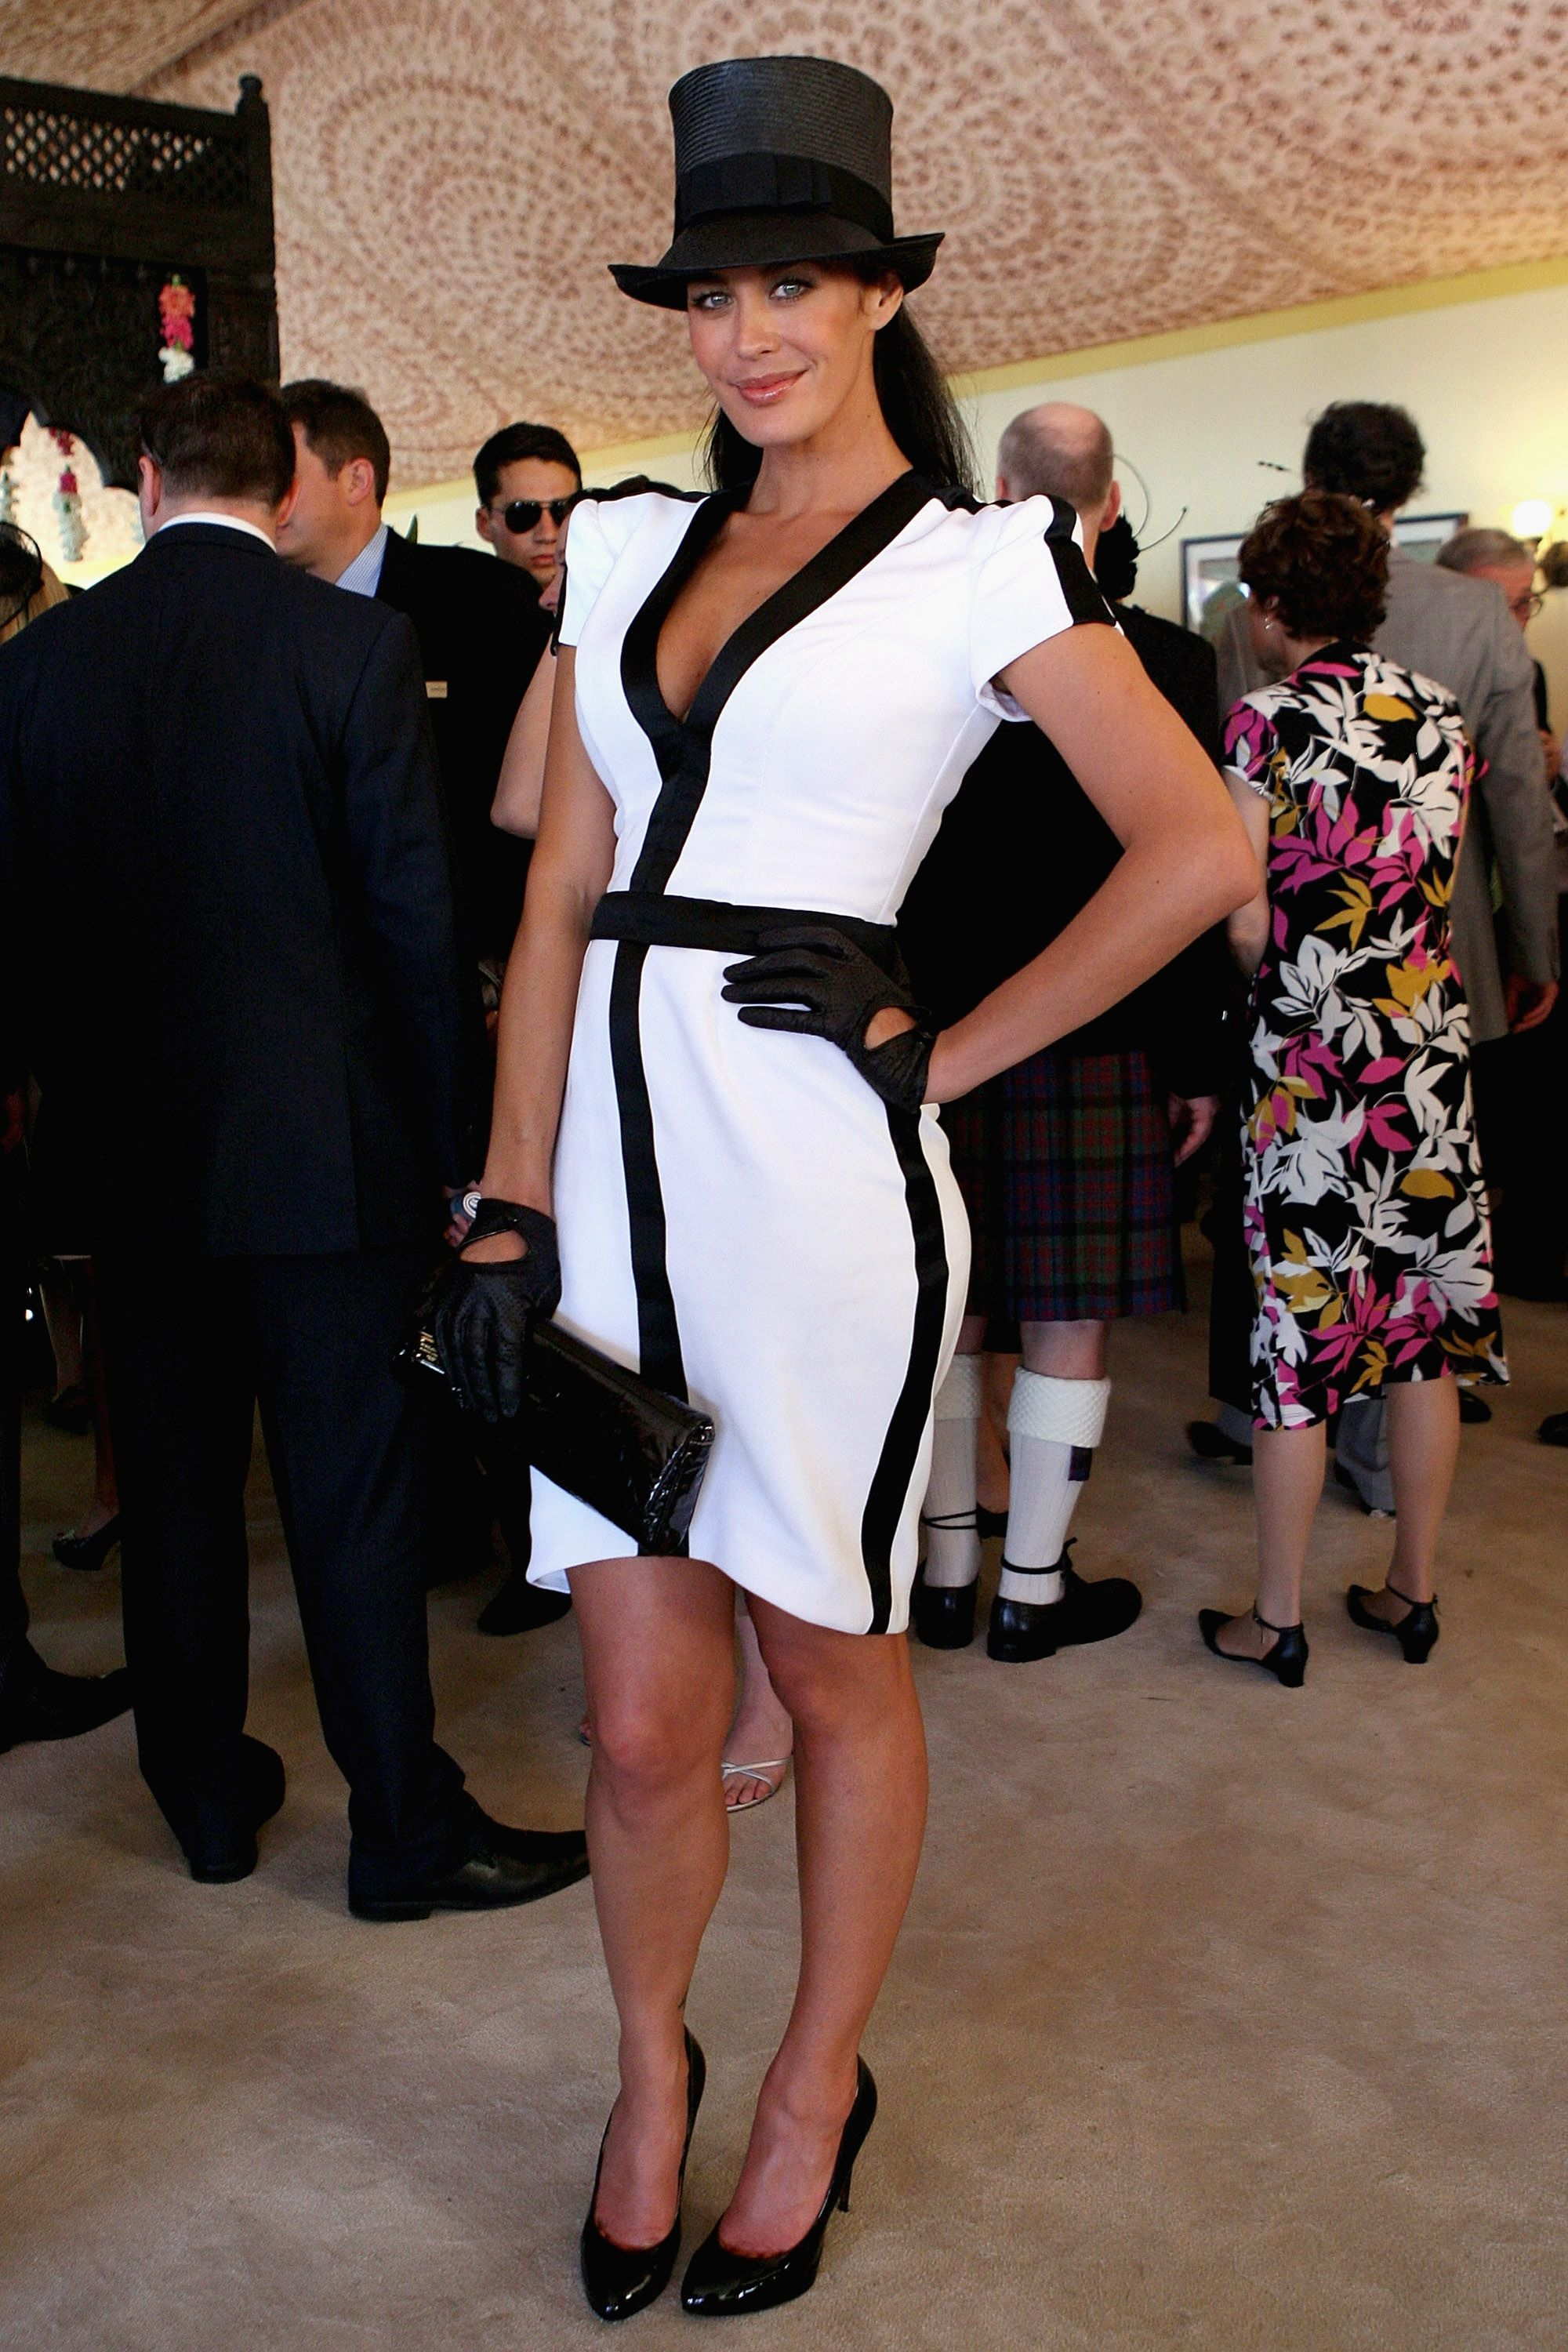 Womens black leather gloves australia - Celebrities In Gloves Australian Model Megan Gale Very Elegant In A White And